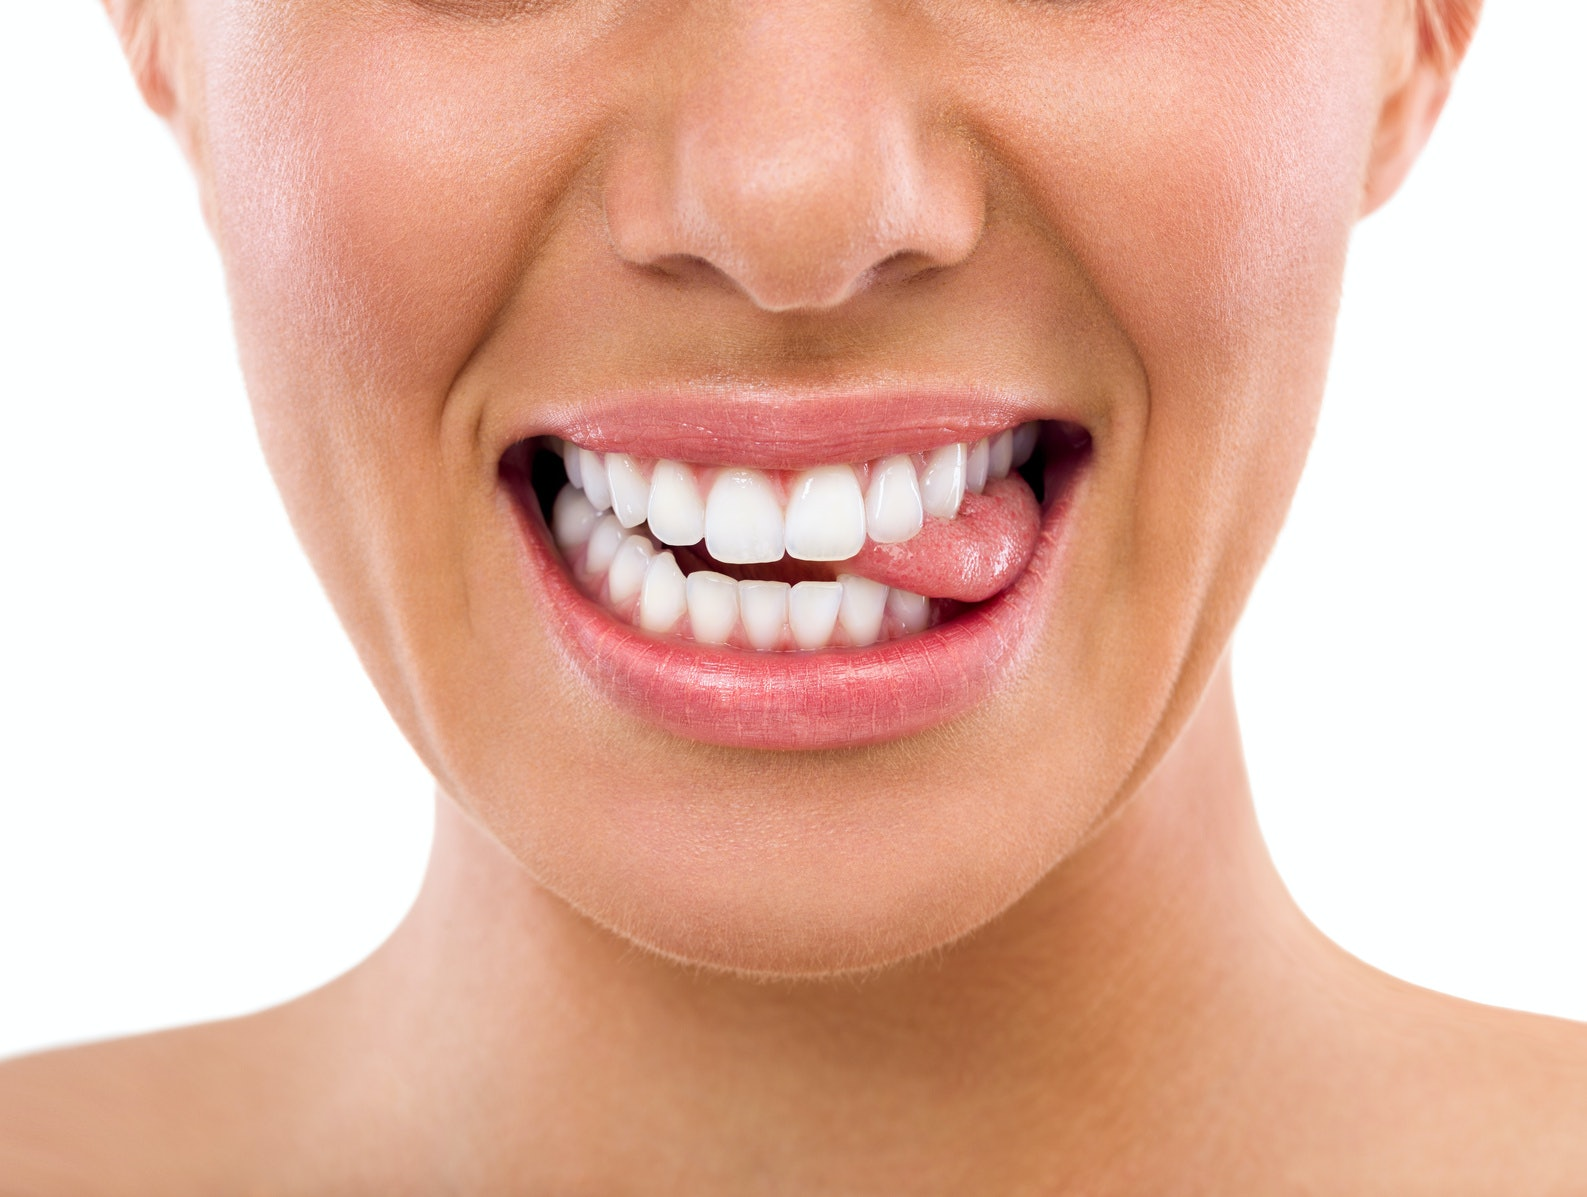 6 Teeth-Whitening Mistakes Youre Making advise